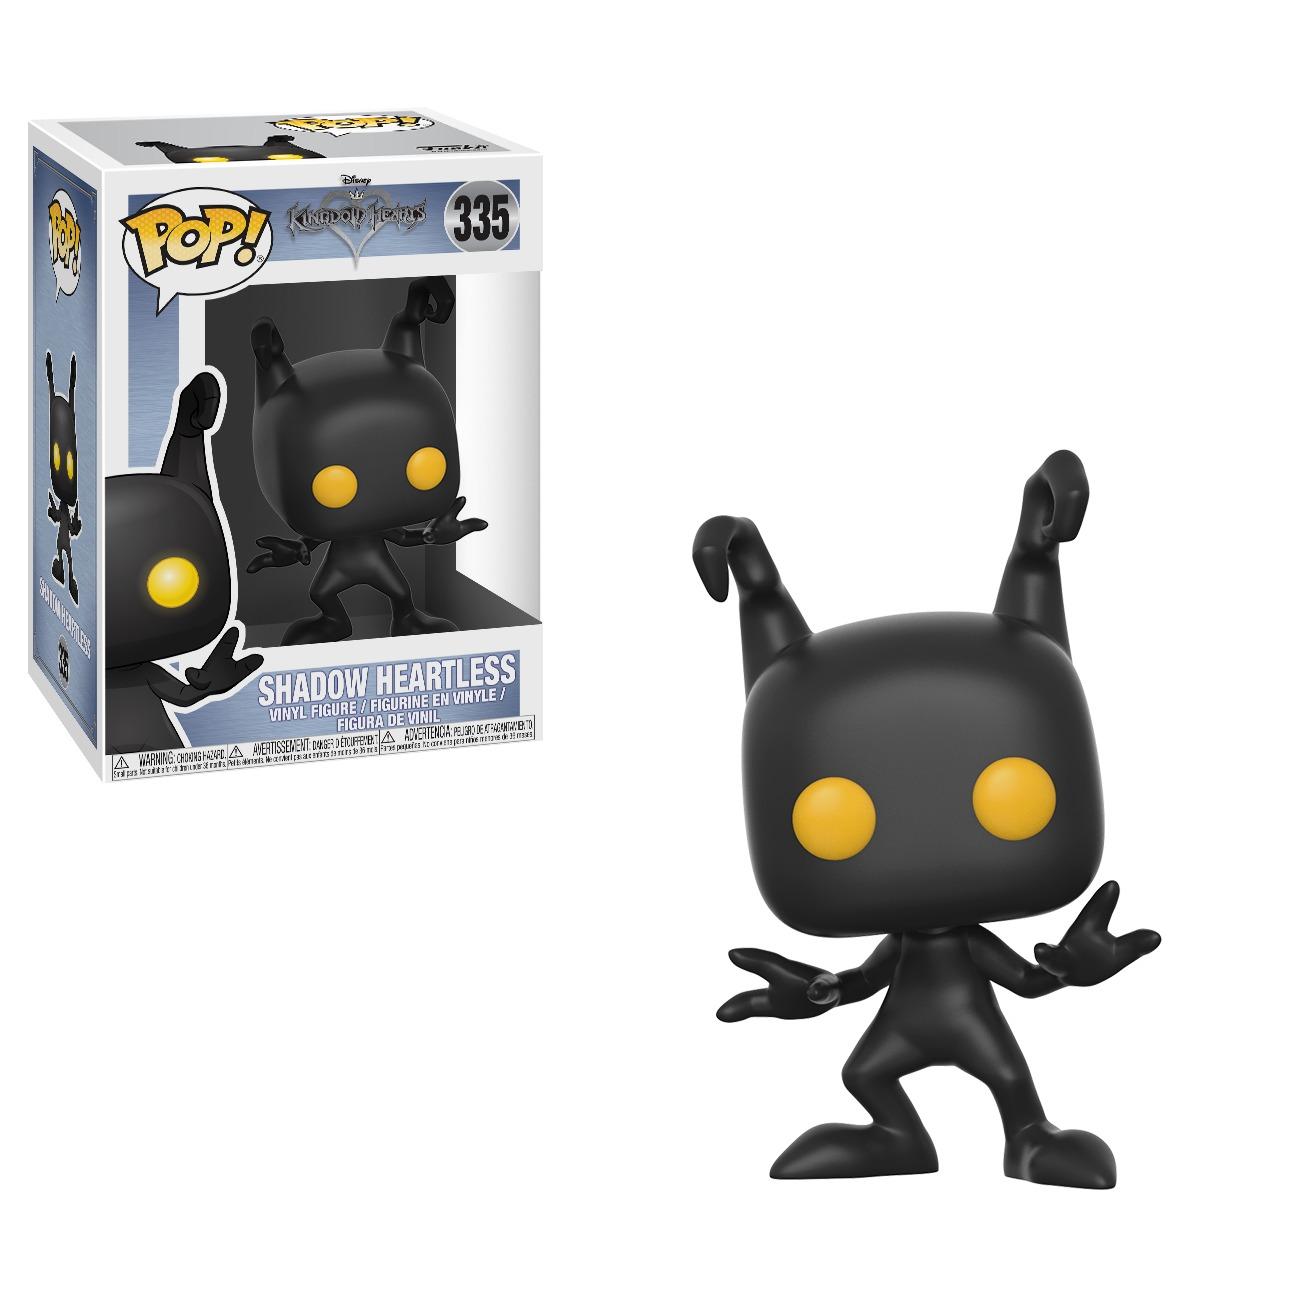 Kingdom Hearts - Heartless Pop! Vinyl Figure (with a chance for a Chase version!) image